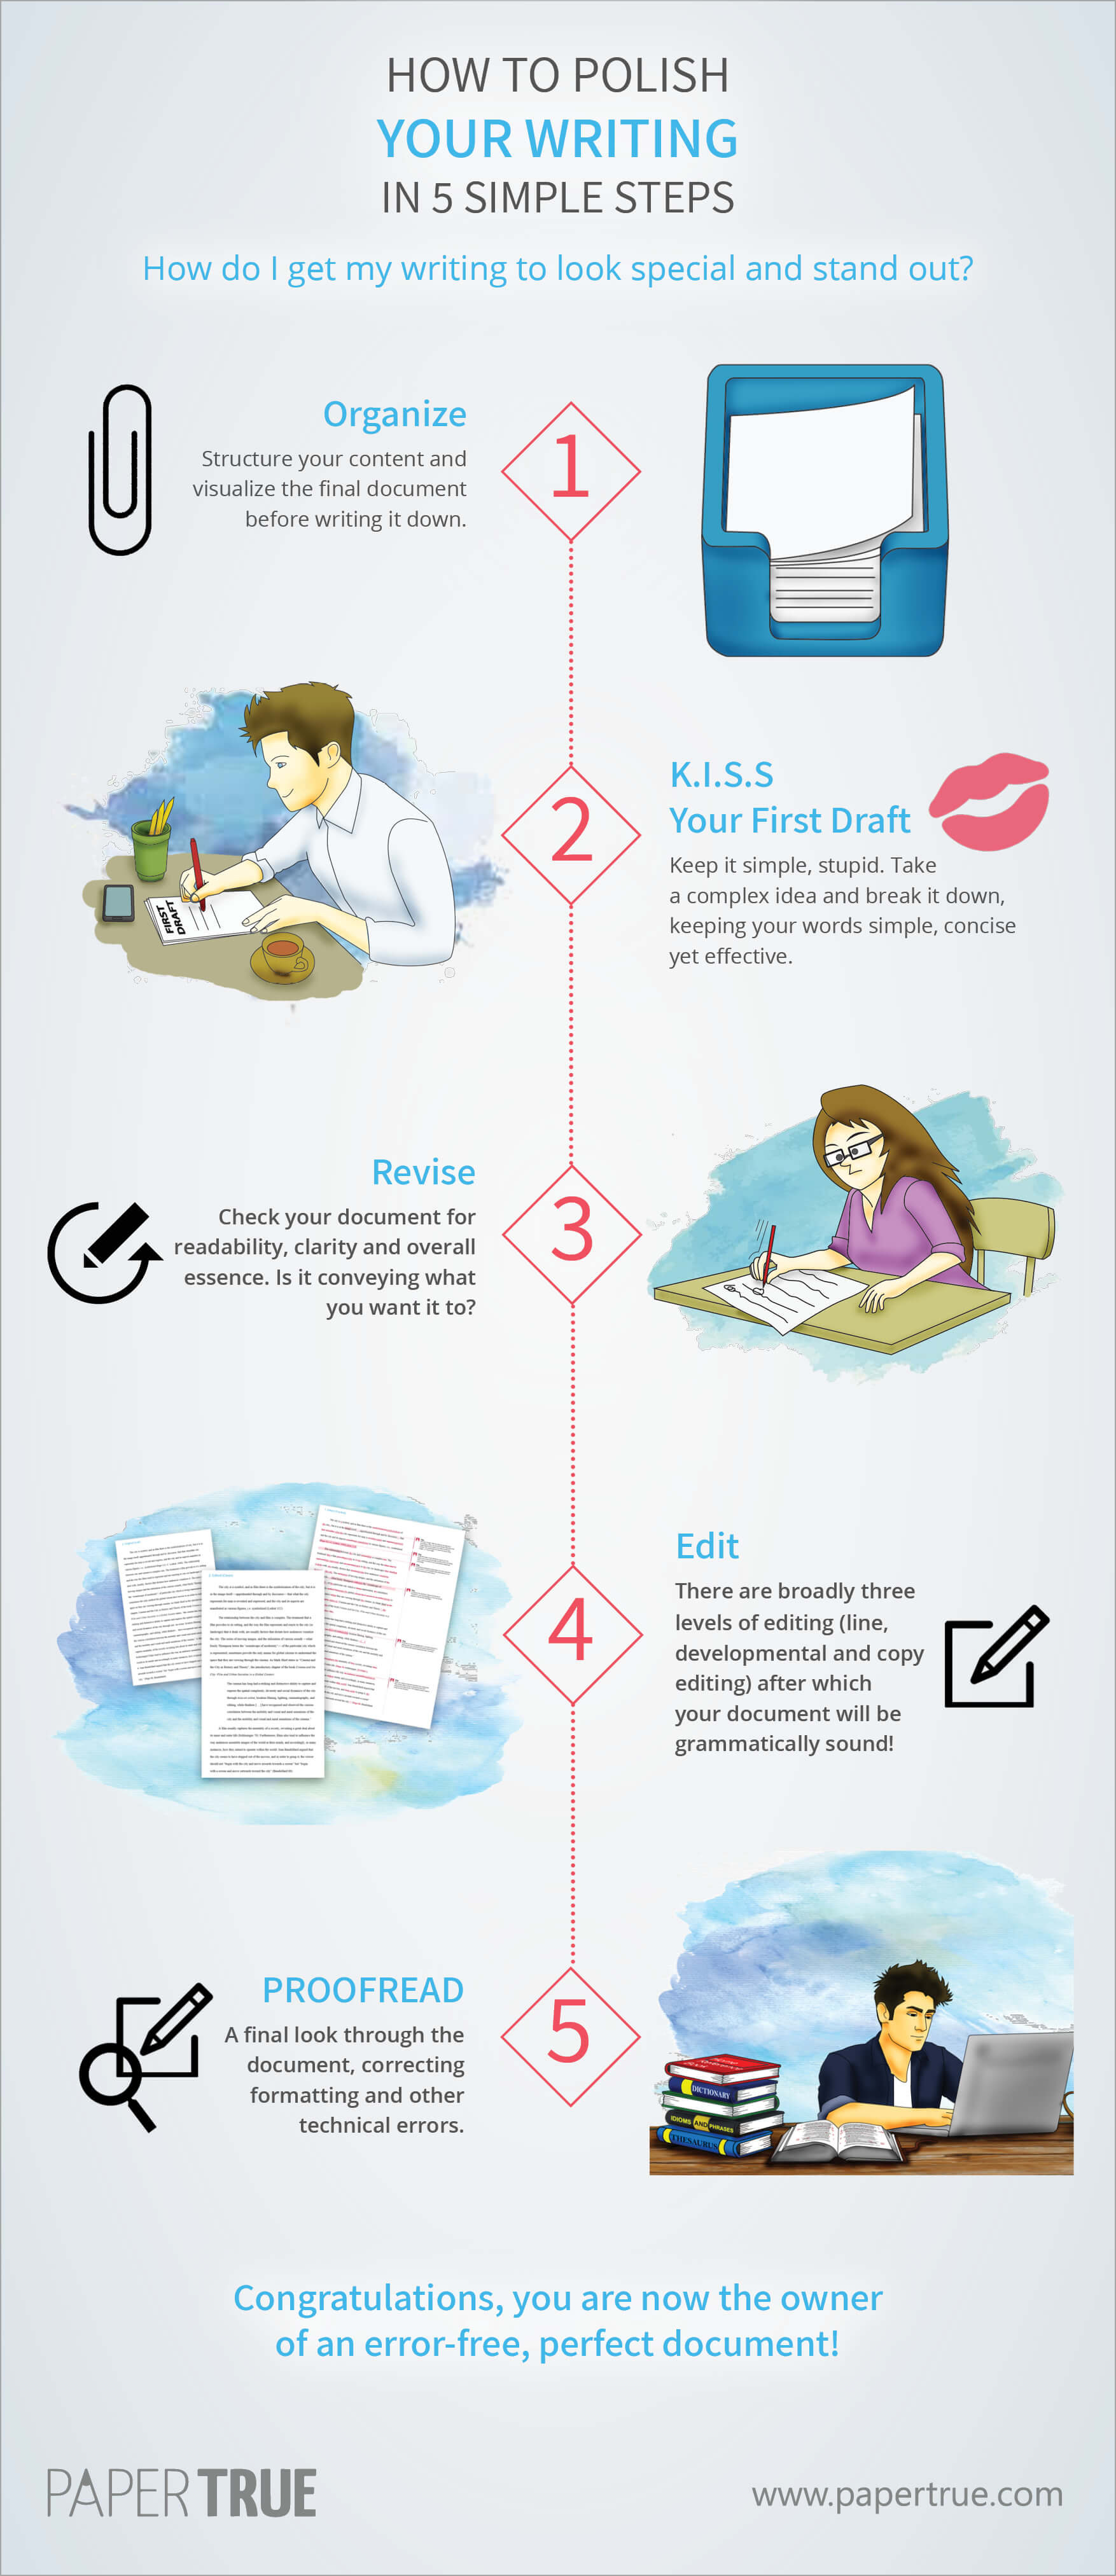 polish-writing-5-steps-infographic-plaza